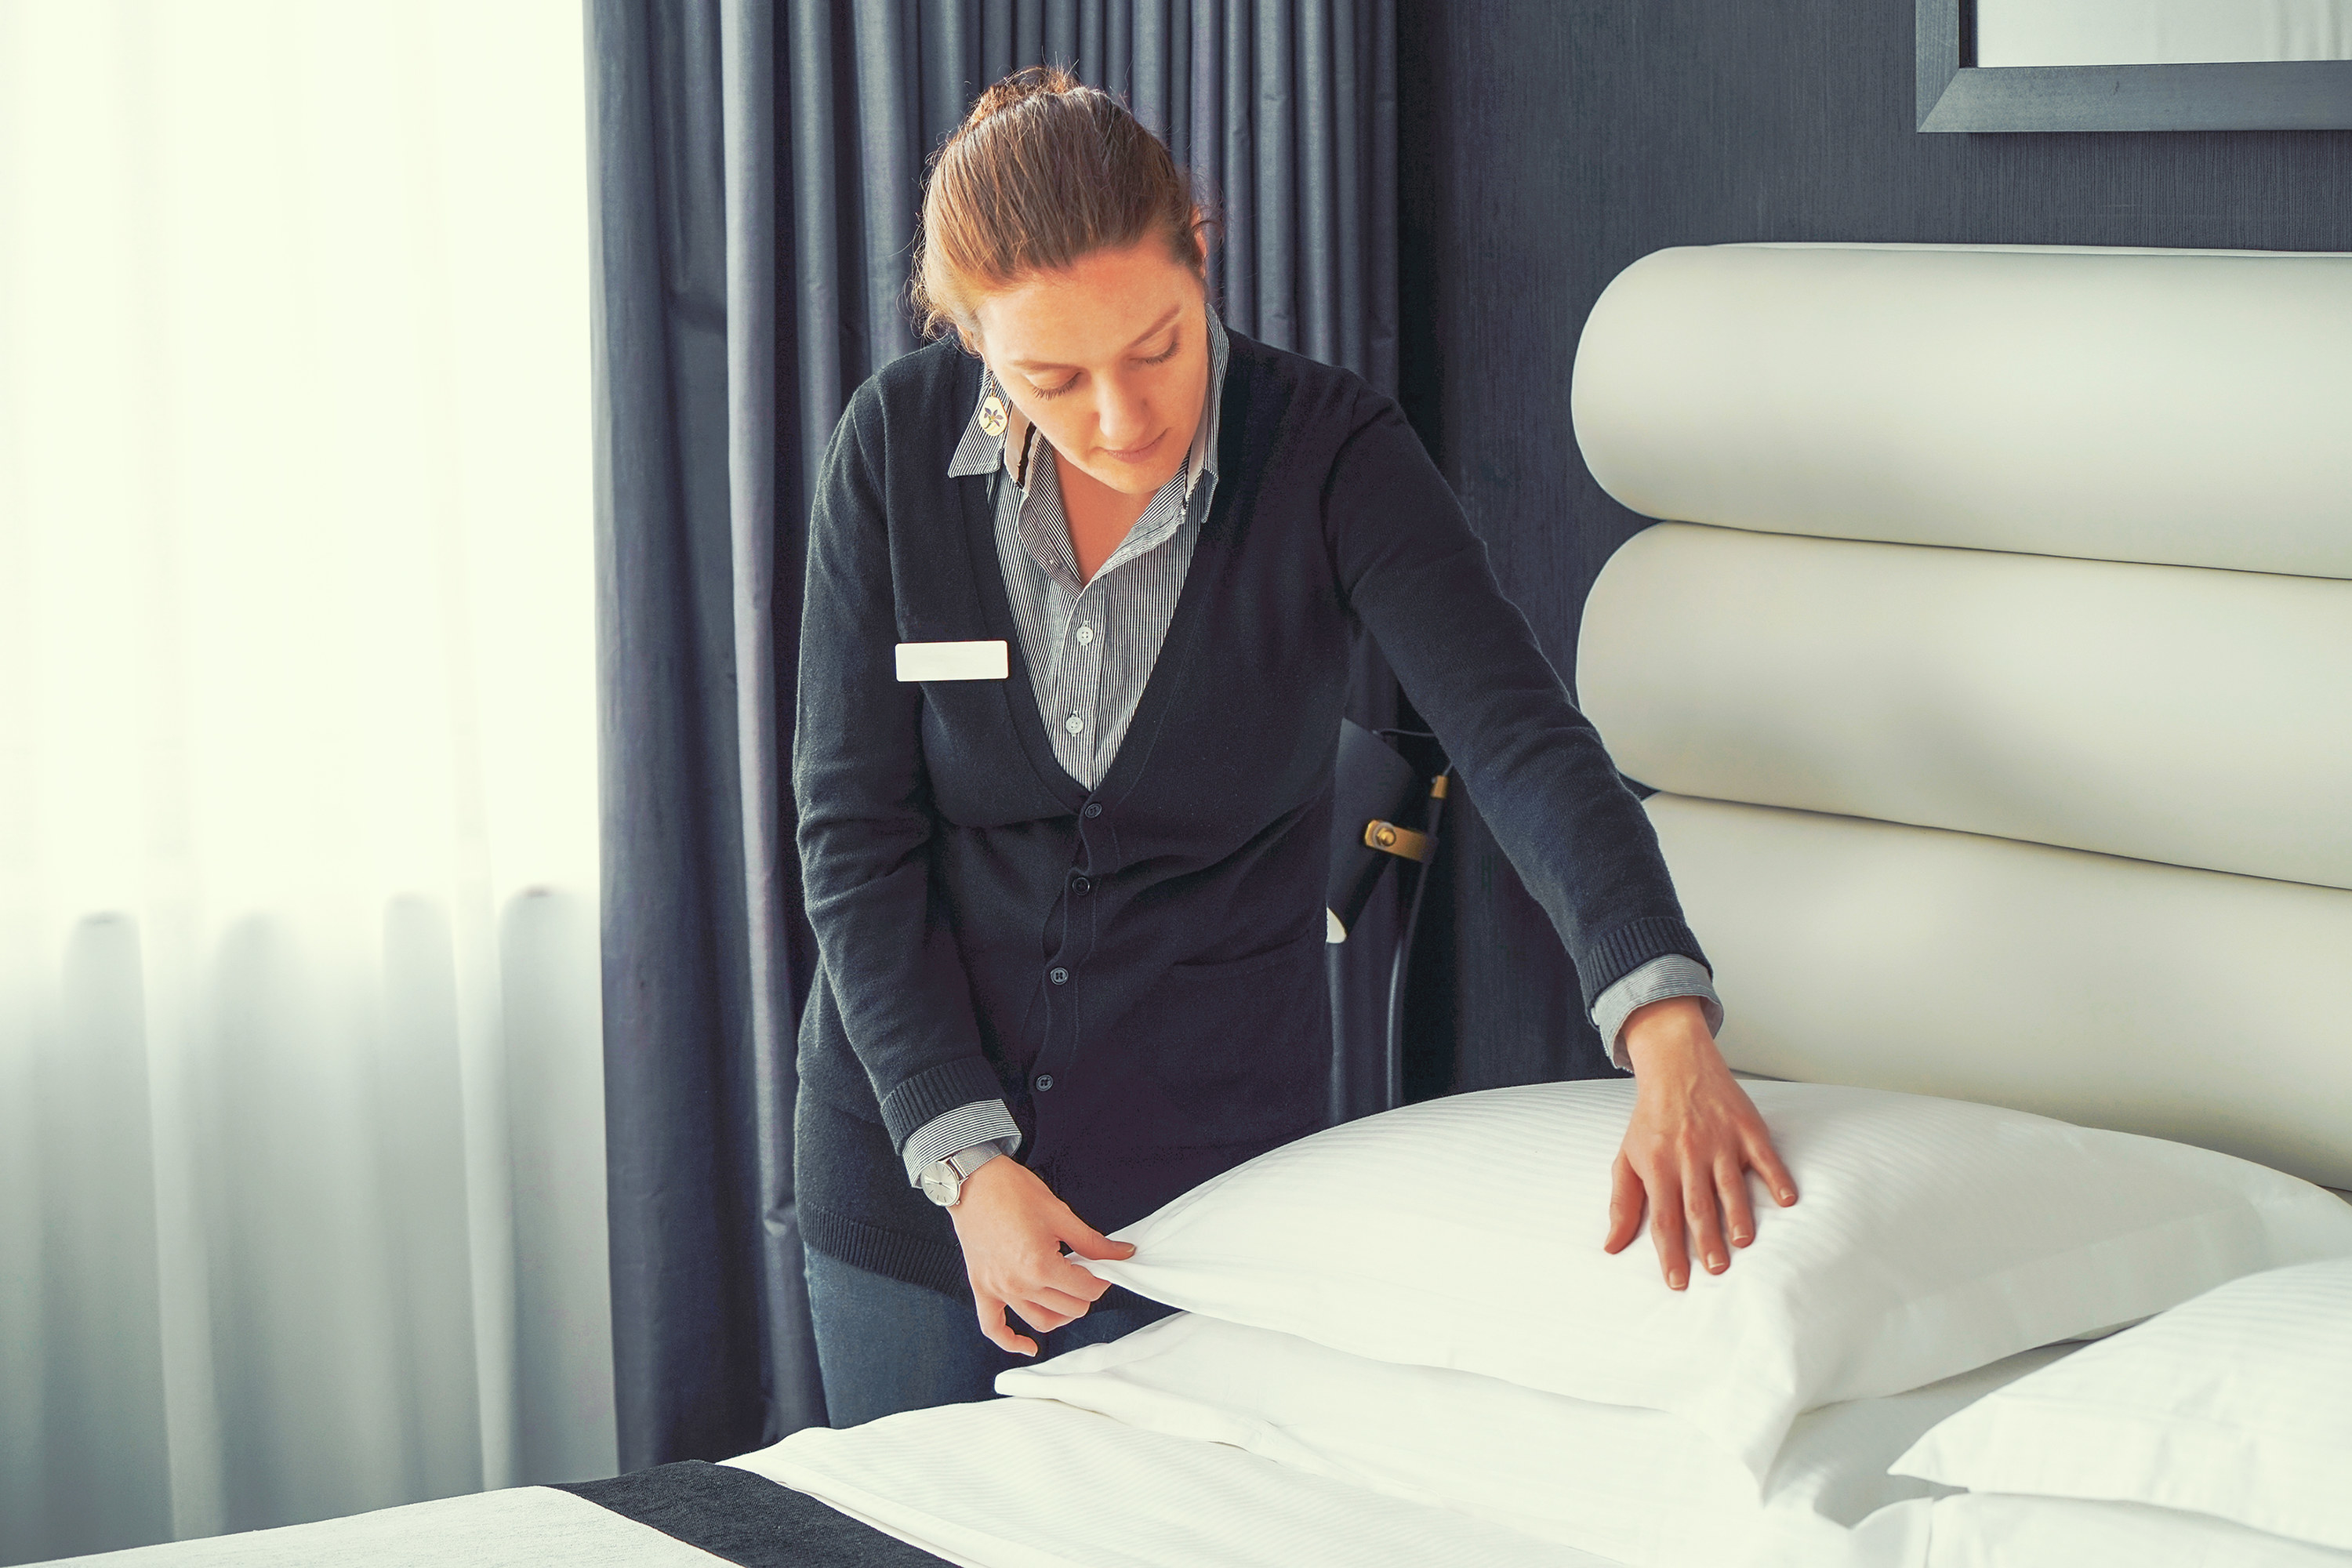 Hotel employee making a bed